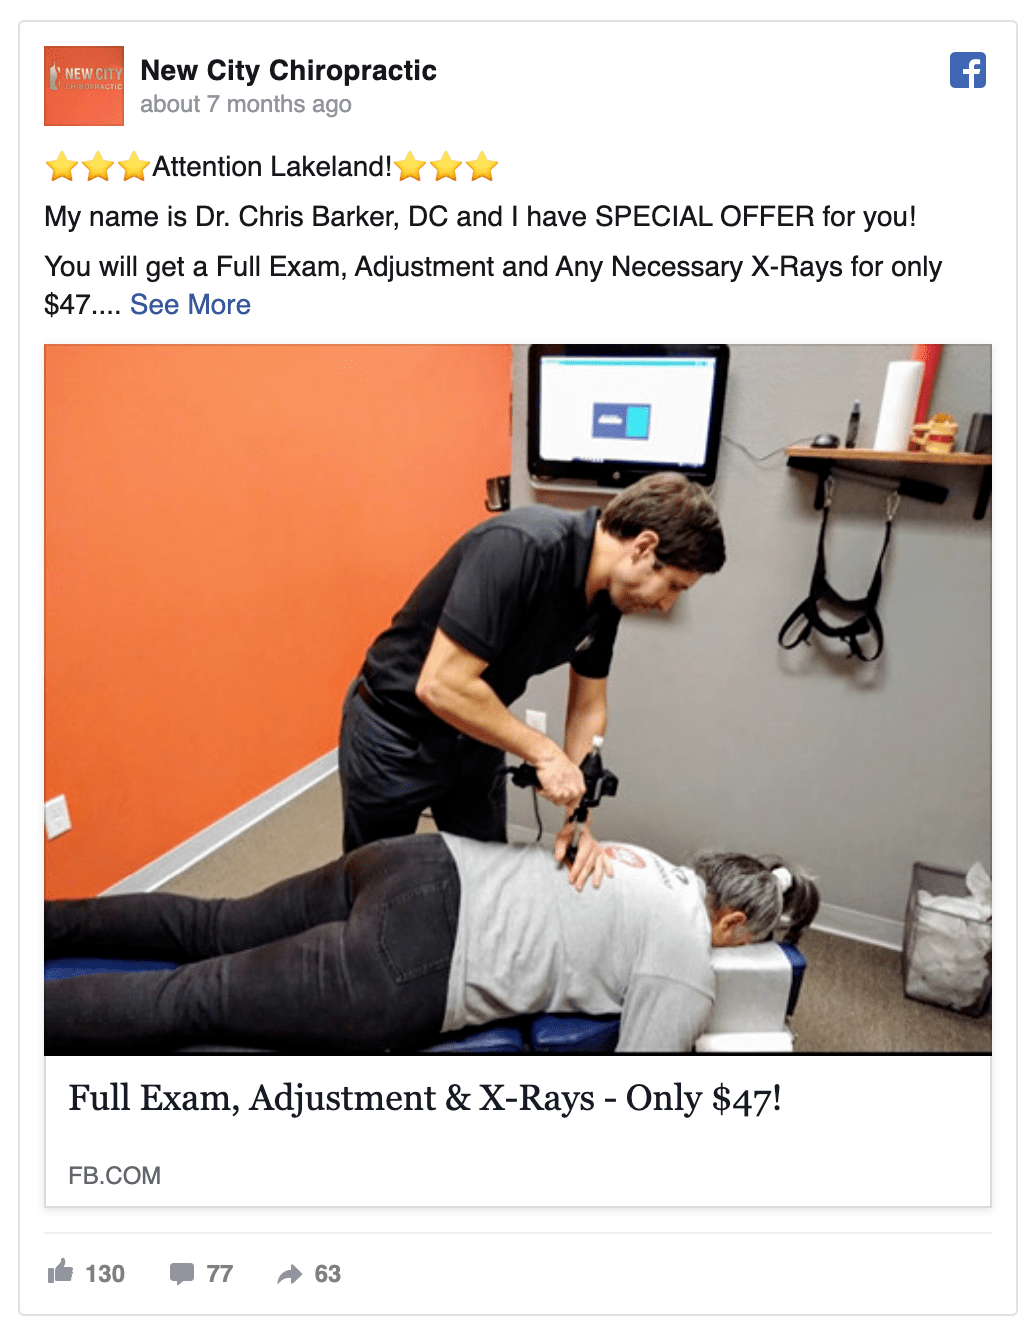 new-city-chiropractic-fb-ad